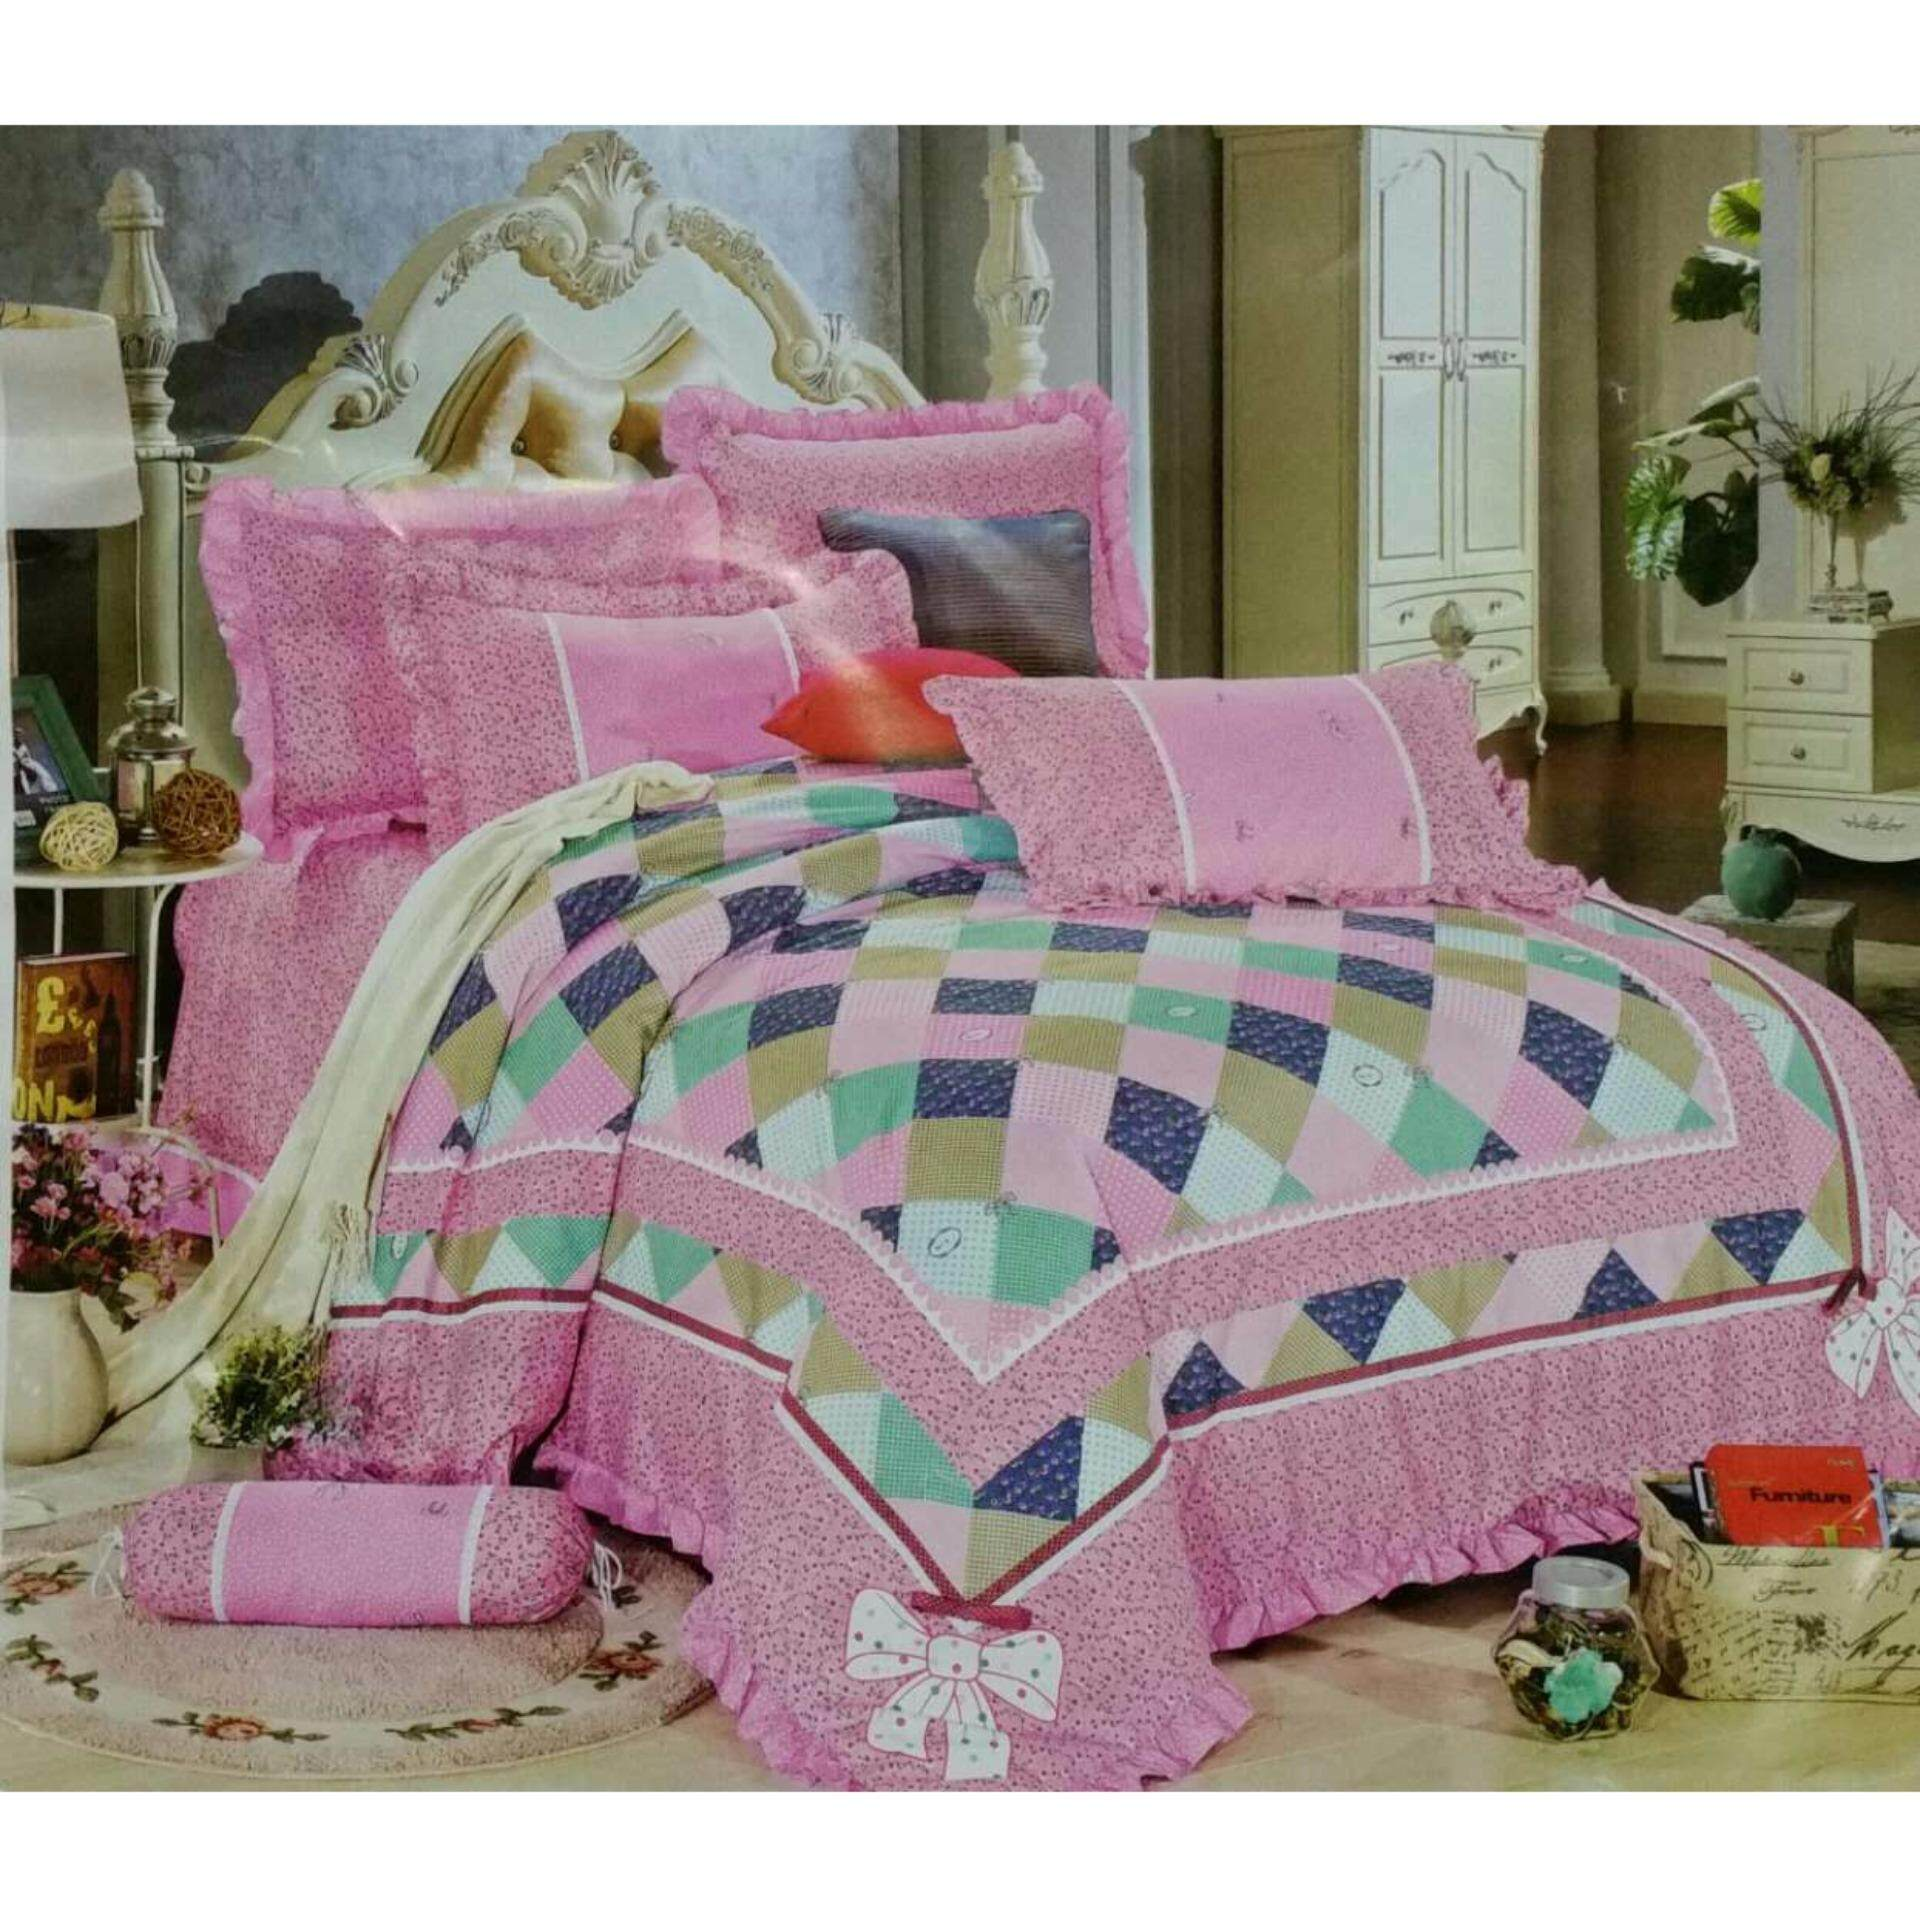 Twin Queen Size Bedding Set/ Bed Sheet /Bedclothes Bed Set Duvet Bed Cover